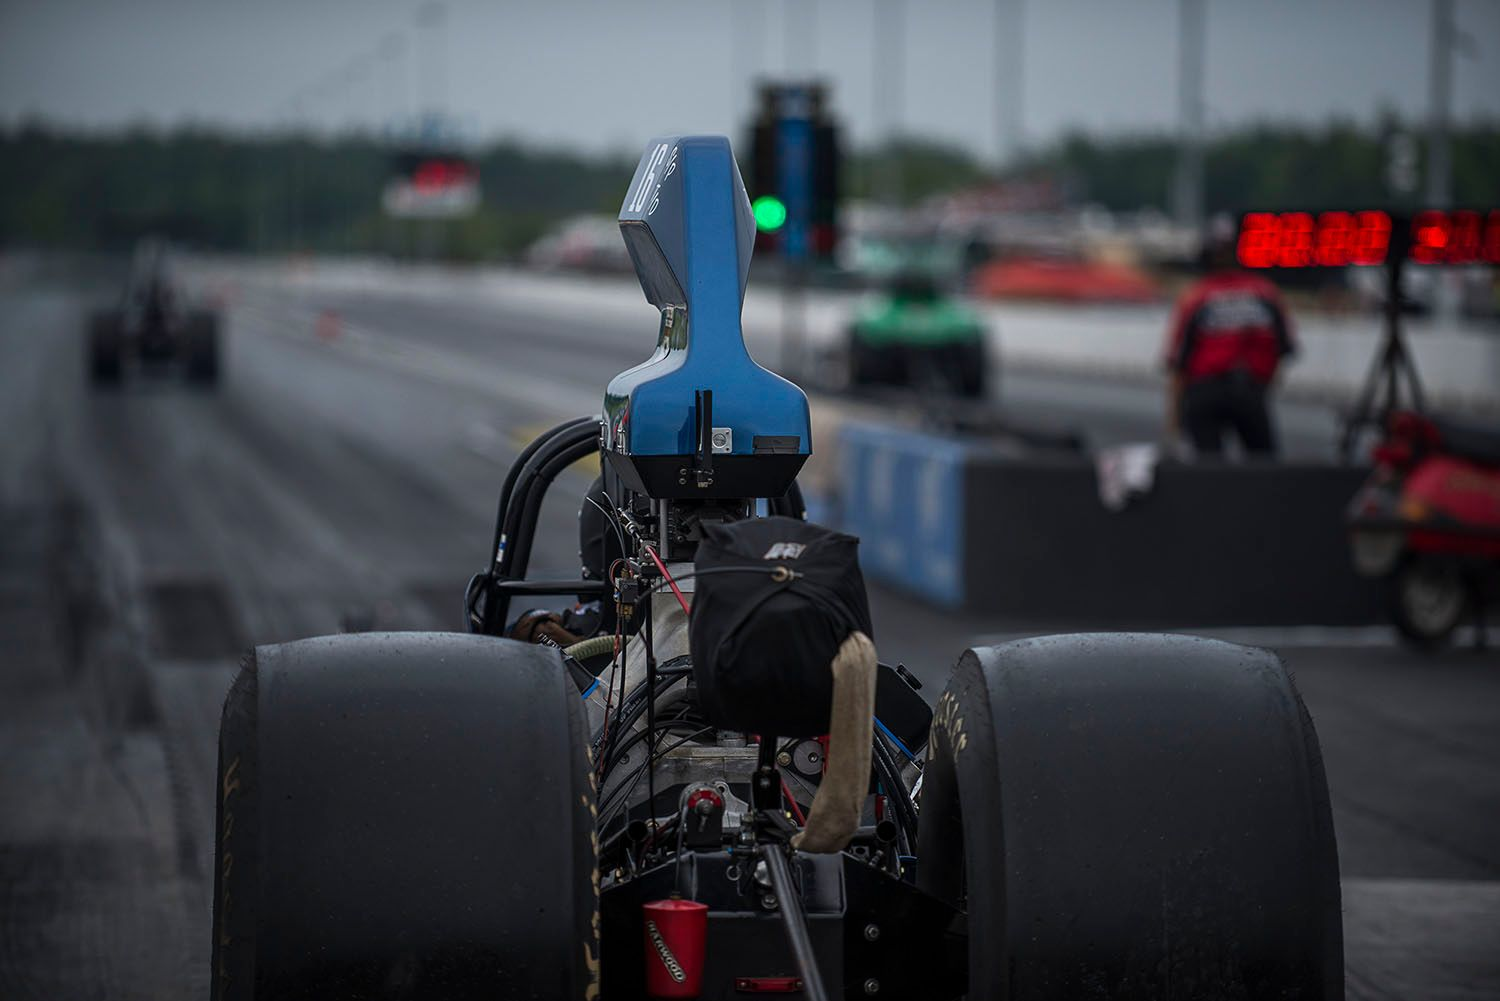 Race Day at the Dragway